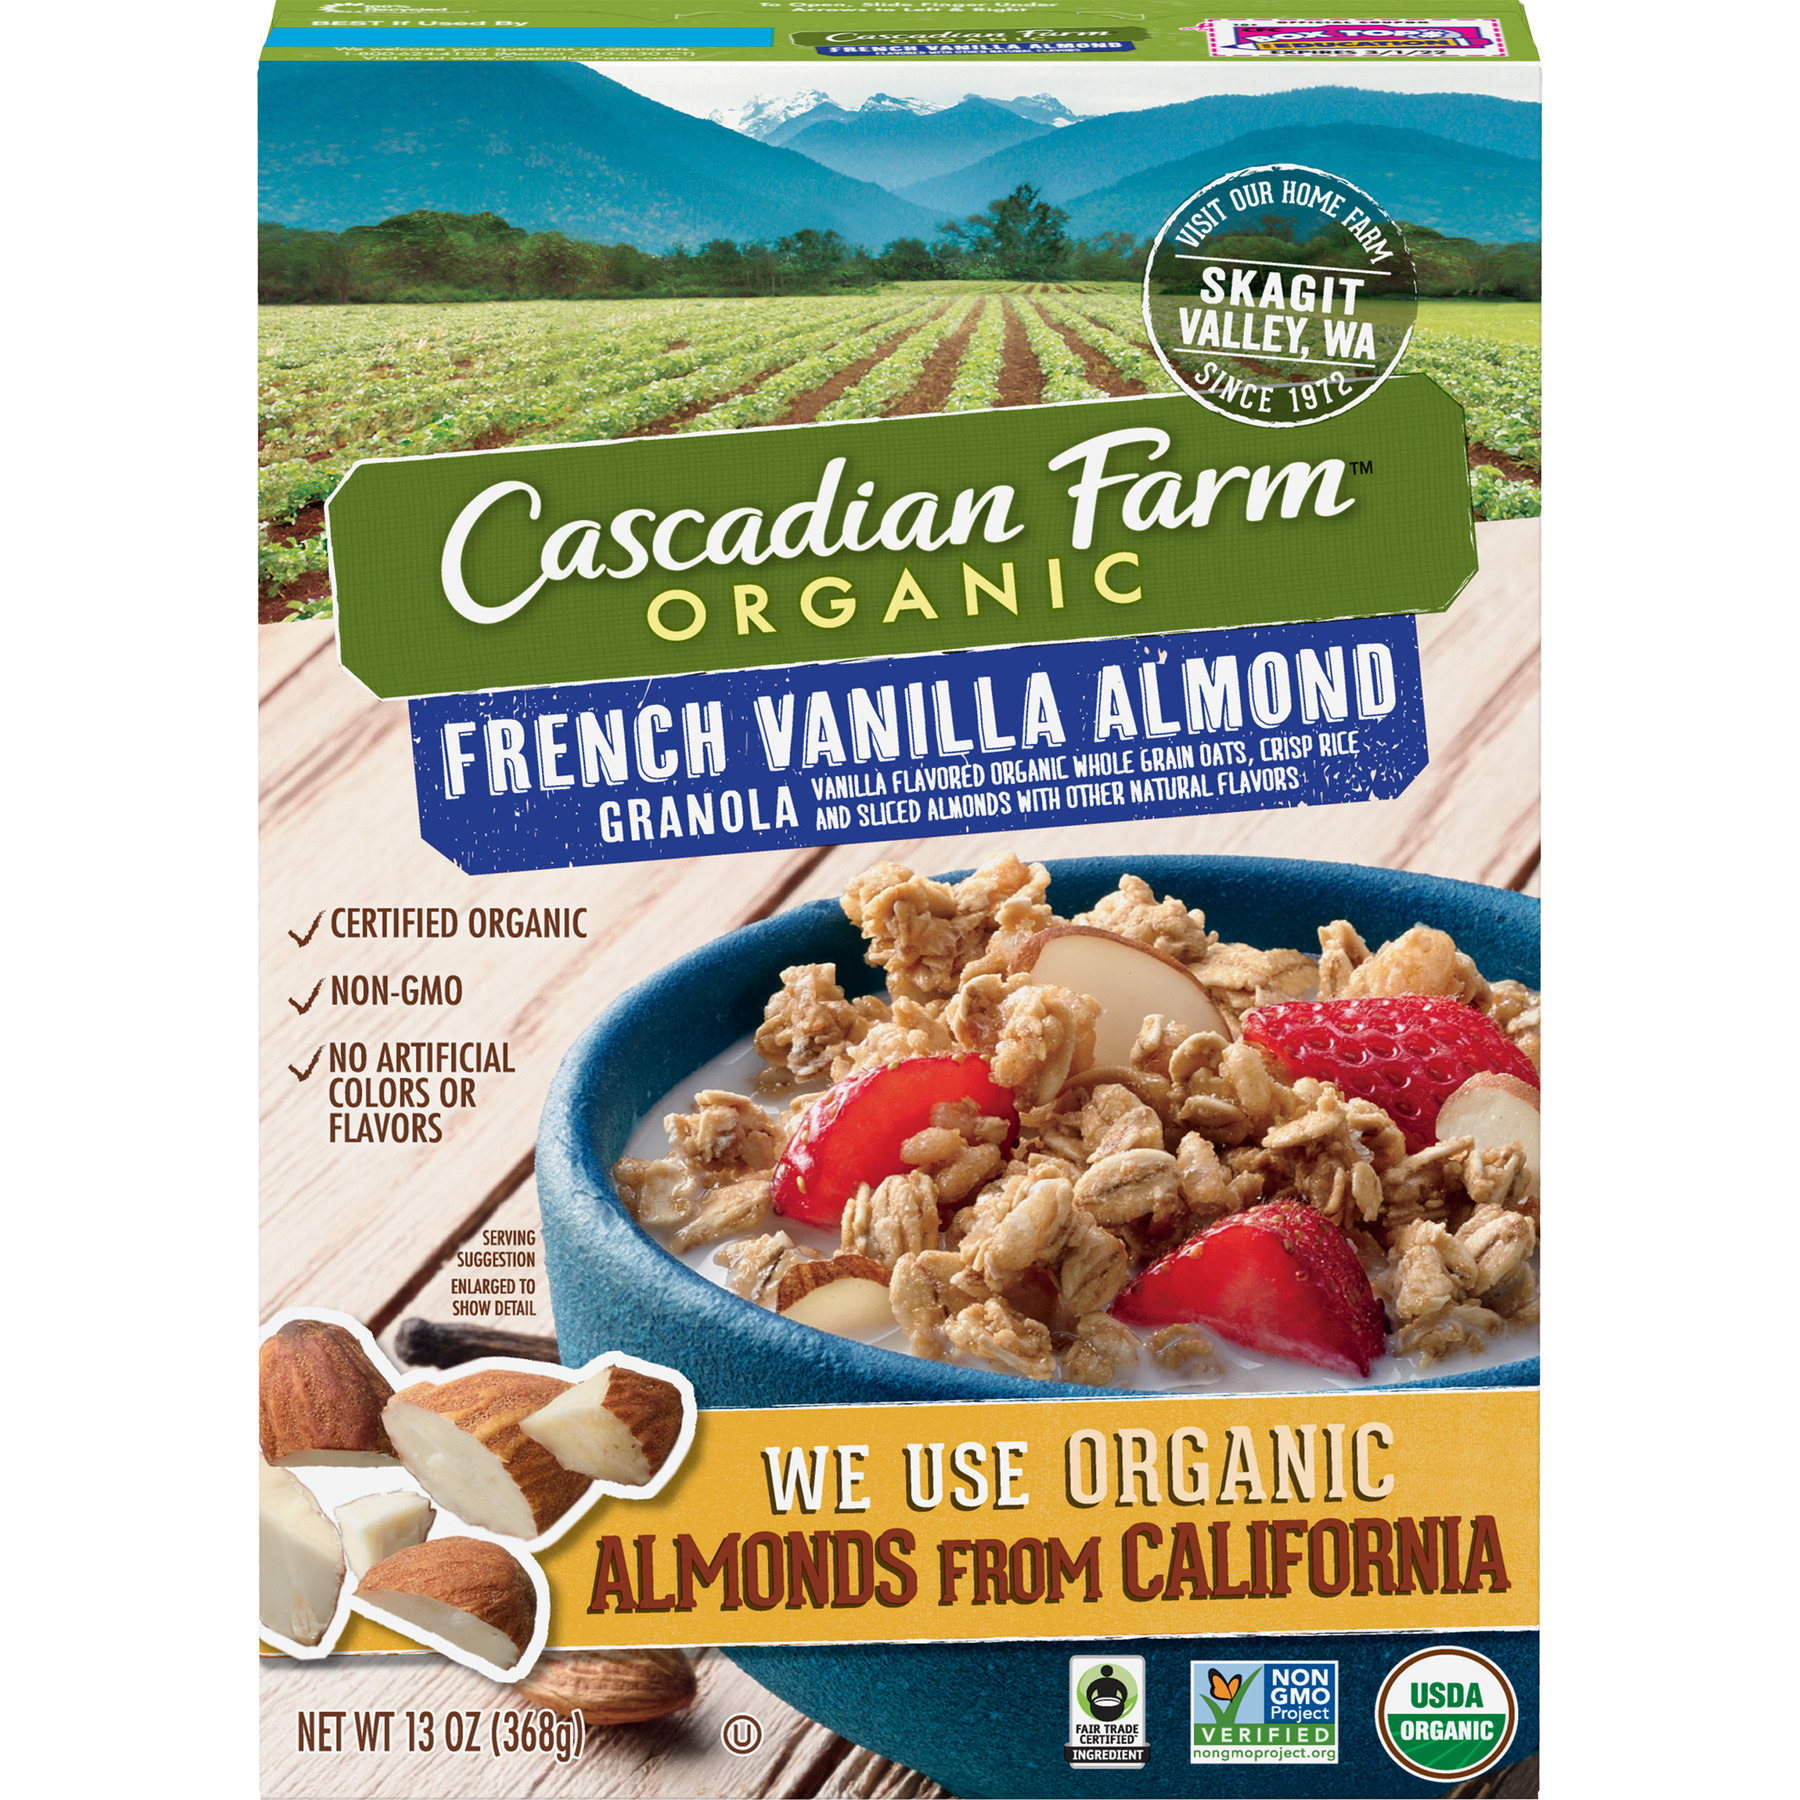 Cascadian Farm Organic Granola, French Vanilla Almond Cereal, 13 oz